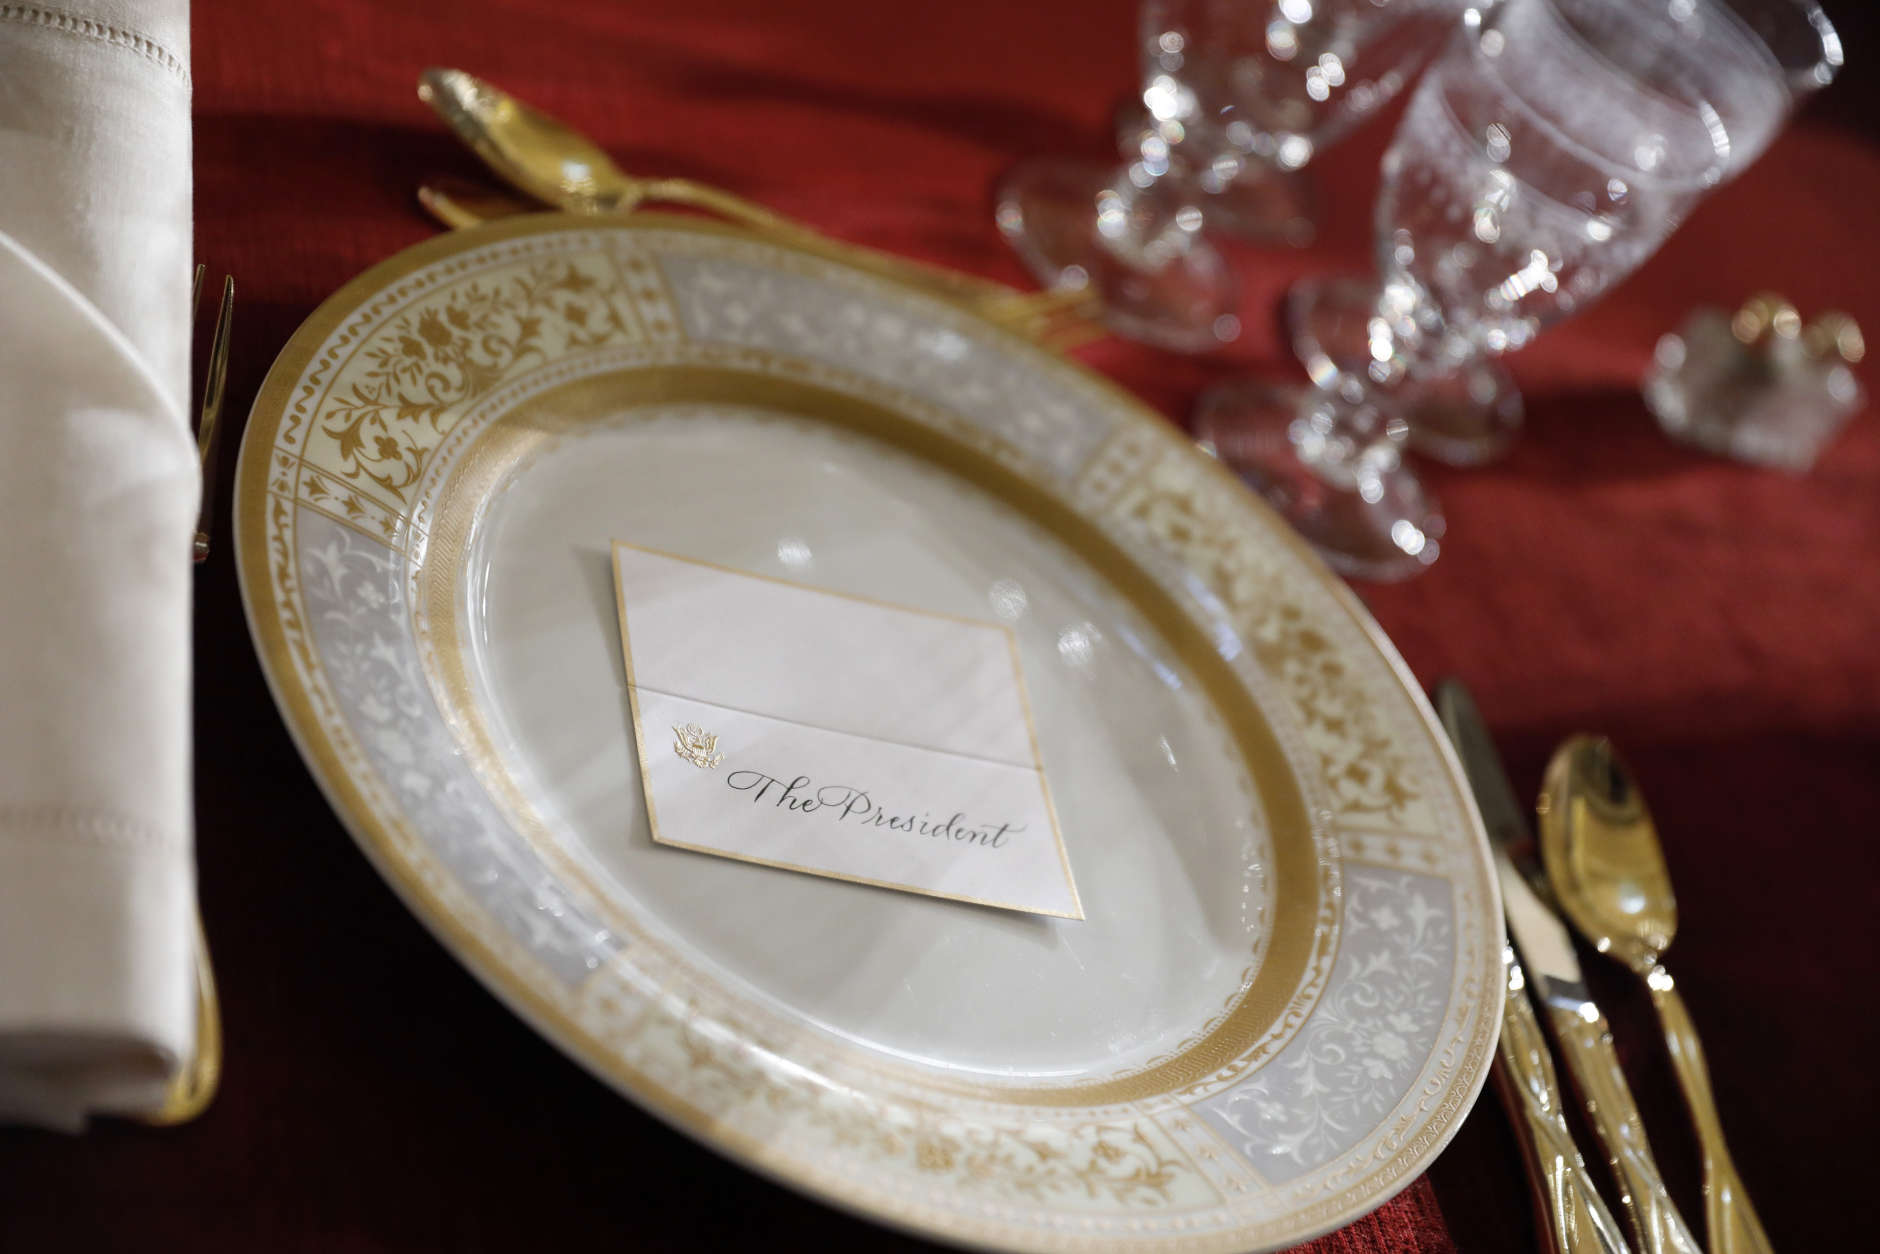 WASHINGTON, DC - JANUARY 20:  President Donald Trump's place setting is seen as workers prepare the Inaugural Luncheon in the US Capitol January 20, 2017 in Washington, DC.  Later in the morning President-elect Trump will be sworn in as the nation's 45th president during an inaugural ceremony at the U.S. Capitol. (Photo by Aaron P. Bernstein/Getty Images)